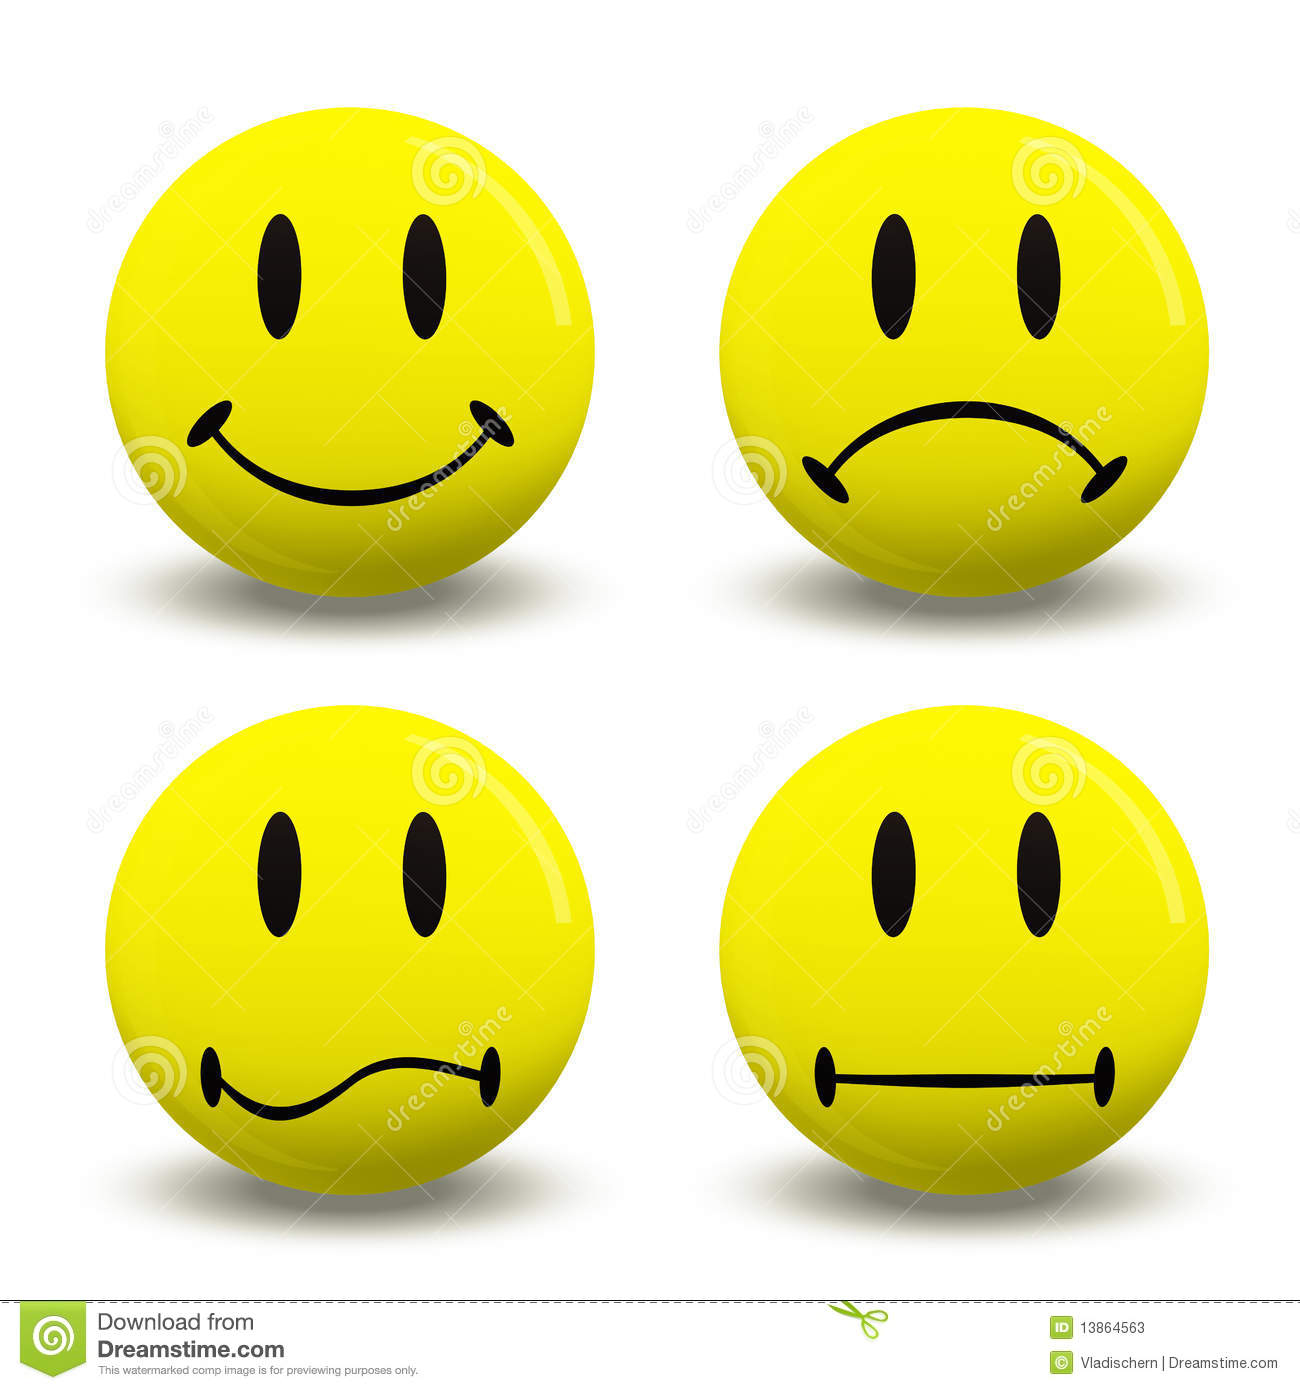 Feelings Faces Clip Art-Feelings Faces Clip Art-11